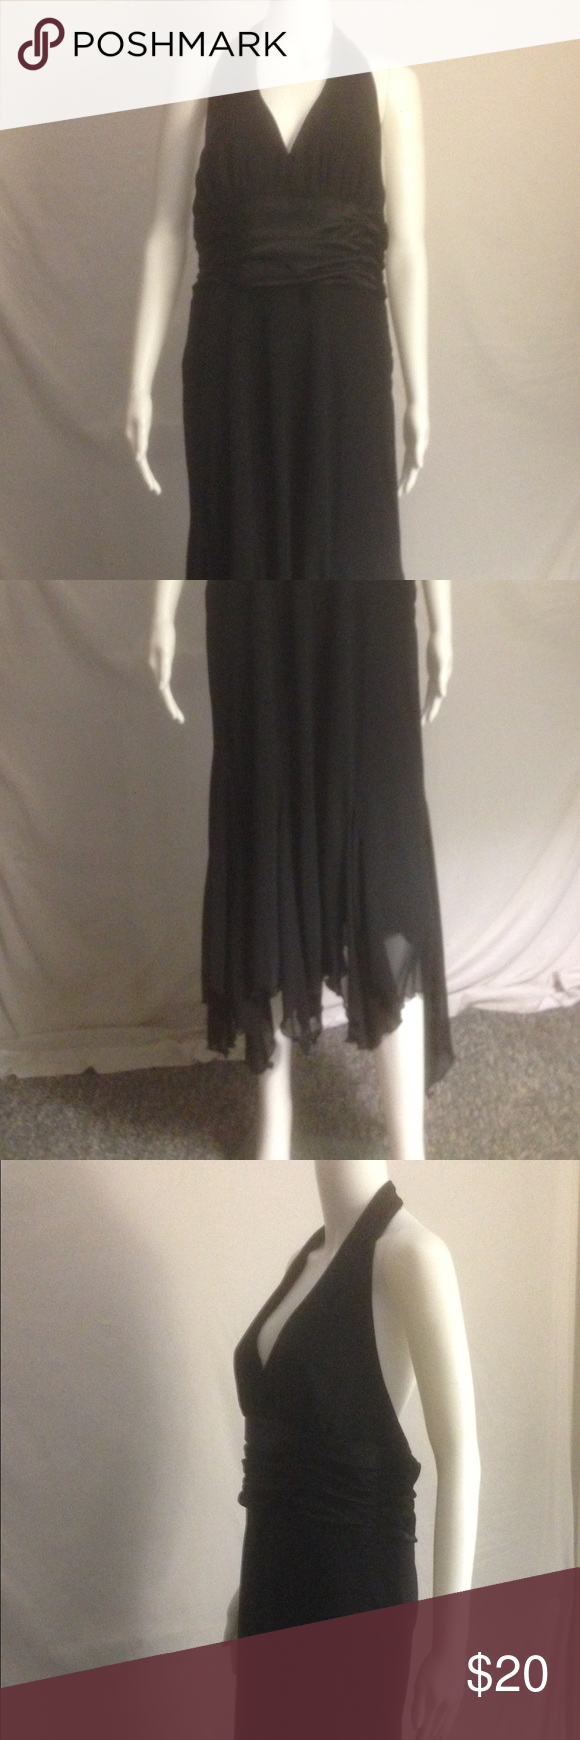 """Gorgeous Dress! Excellent, like-new condition.  This is a beautiful black dress that would be perfect for that special occasion.  It's sleeveless with a halter-style neck that is held together by two buttons and it has a zippered back.  It has an empire waist accented by a dash of black silky fabric and it also has a handkerchief hem that seems to float as you walk.  It's made of Poly and is Dry Clean.  The length varies from 44-49"""" due to the hem style and it's a Size: 14. S. L. Fashions…"""